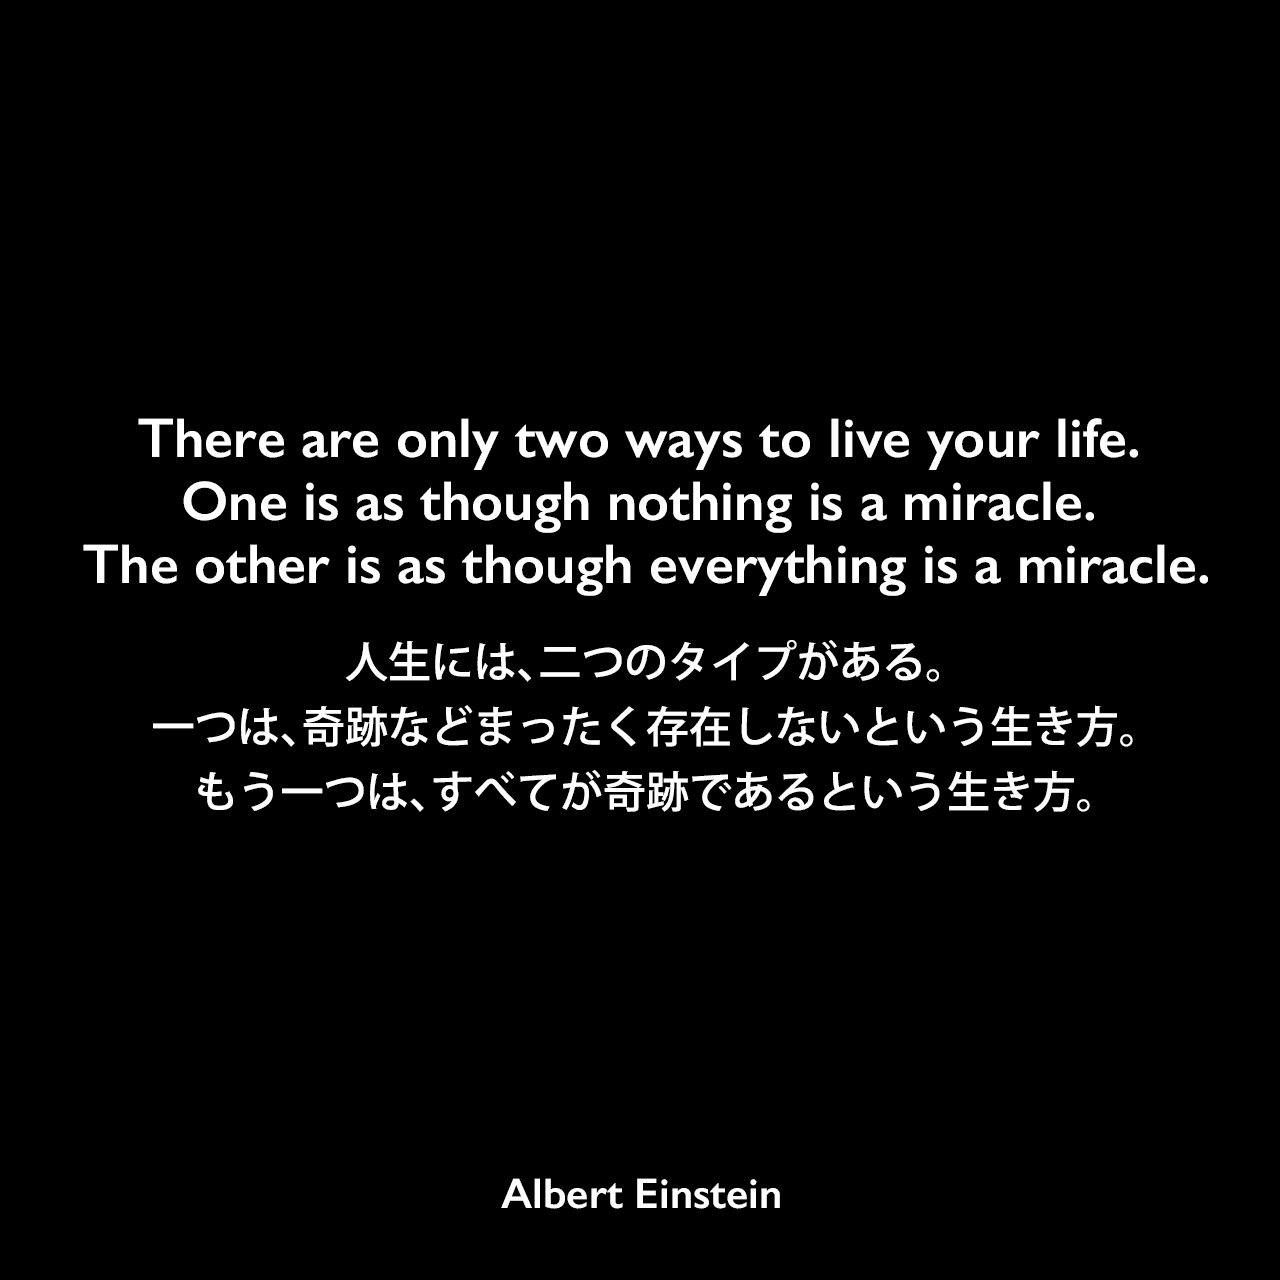 There are only two ways to live your life. One is as though nothing is a miracle. The other is as though everything is a miracle.人生には、二つのタイプがある。一つは、奇跡などまったく存在しないという生き方。もう一つは、すべてが奇跡であるという生き方。Albert Einstein